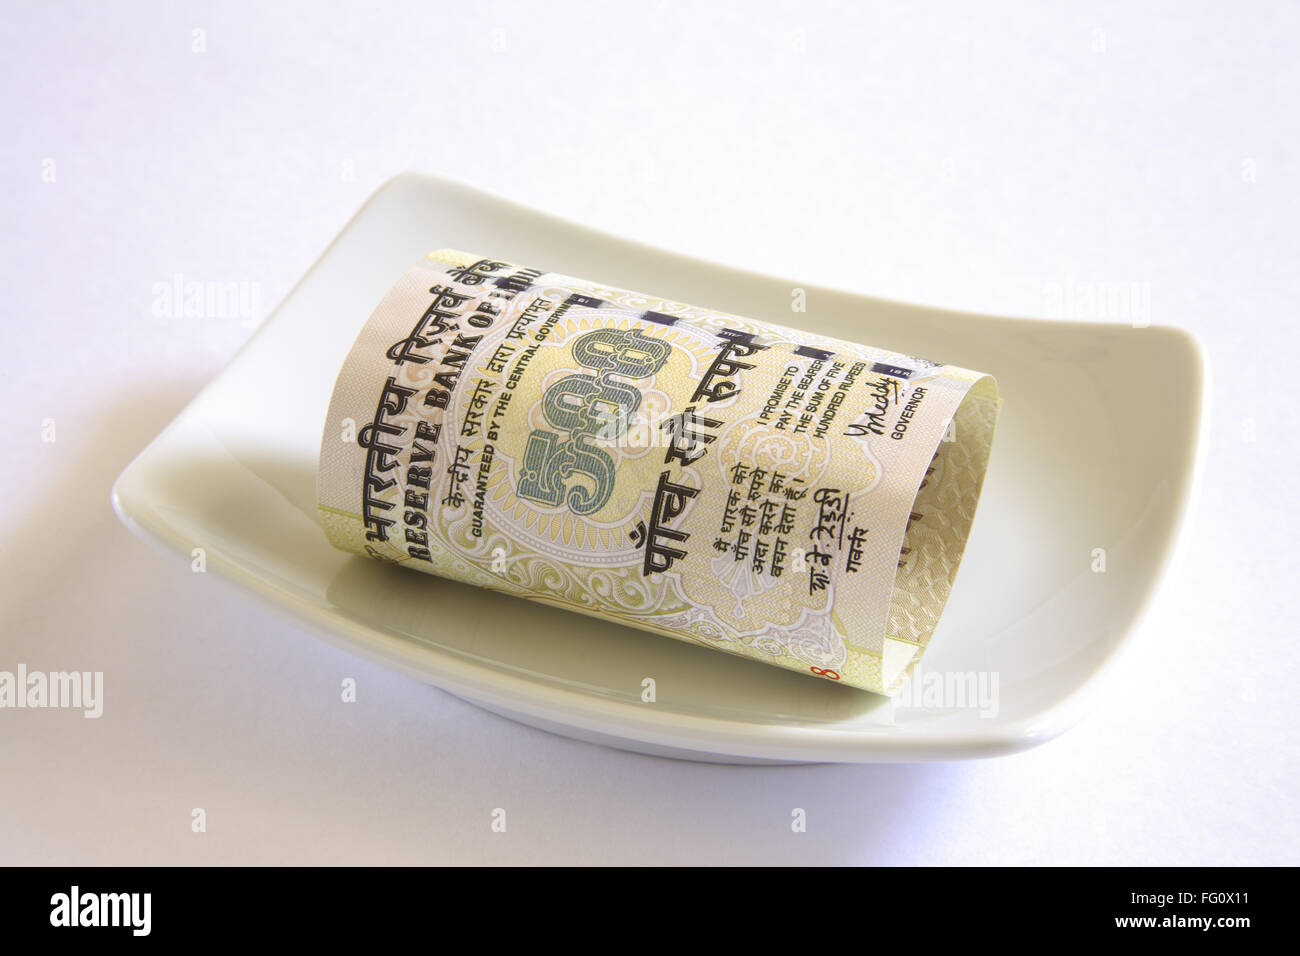 Concept , Indian currency five hundred rupees in plate - Stock Image